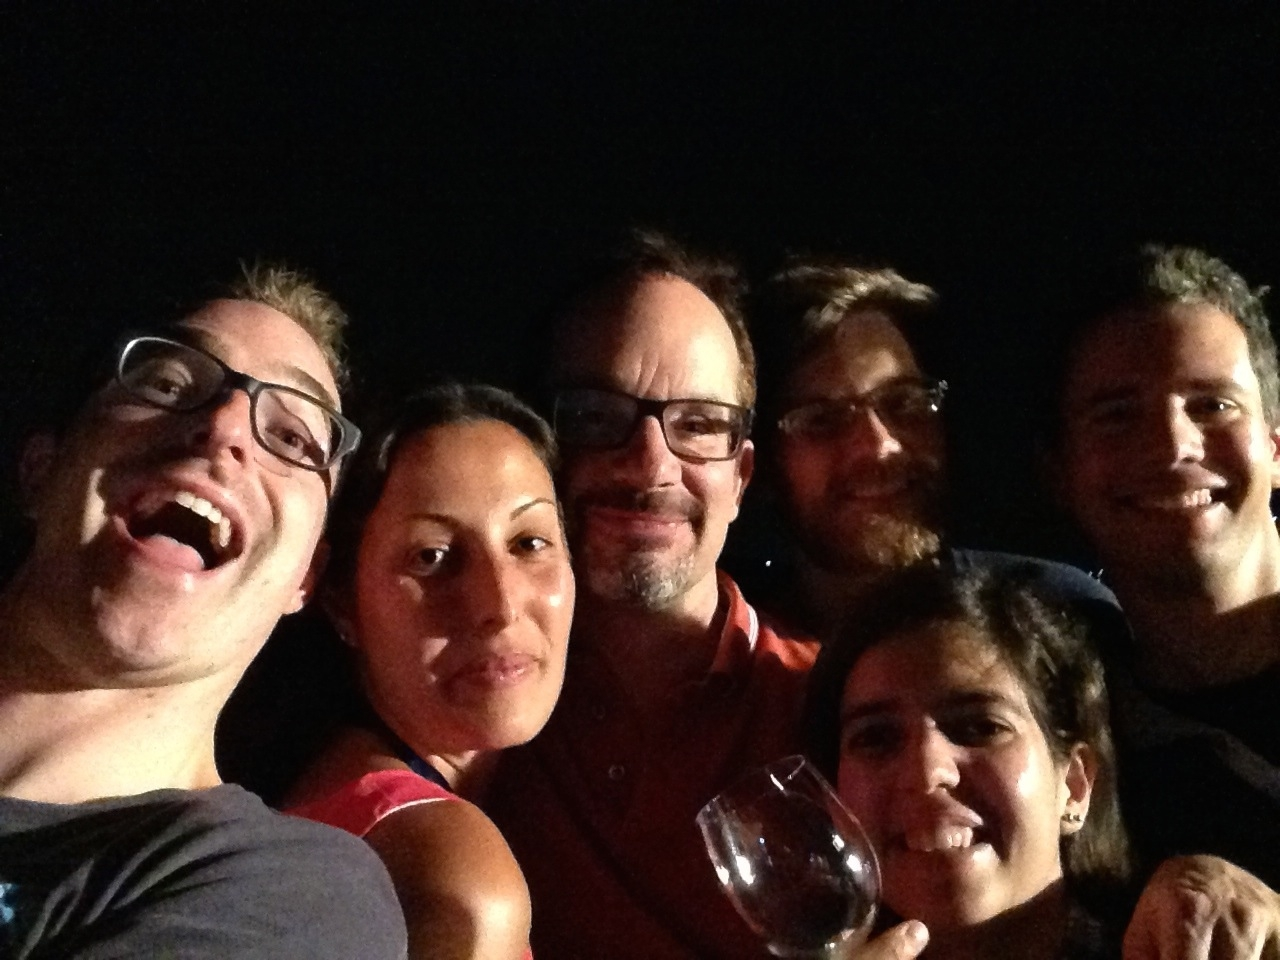 Oliver Wueseke, Julia Mahamid, Tony Hyman, Jeff Woodruff, Beatriz Ferreira Gomes, and Ben Engel